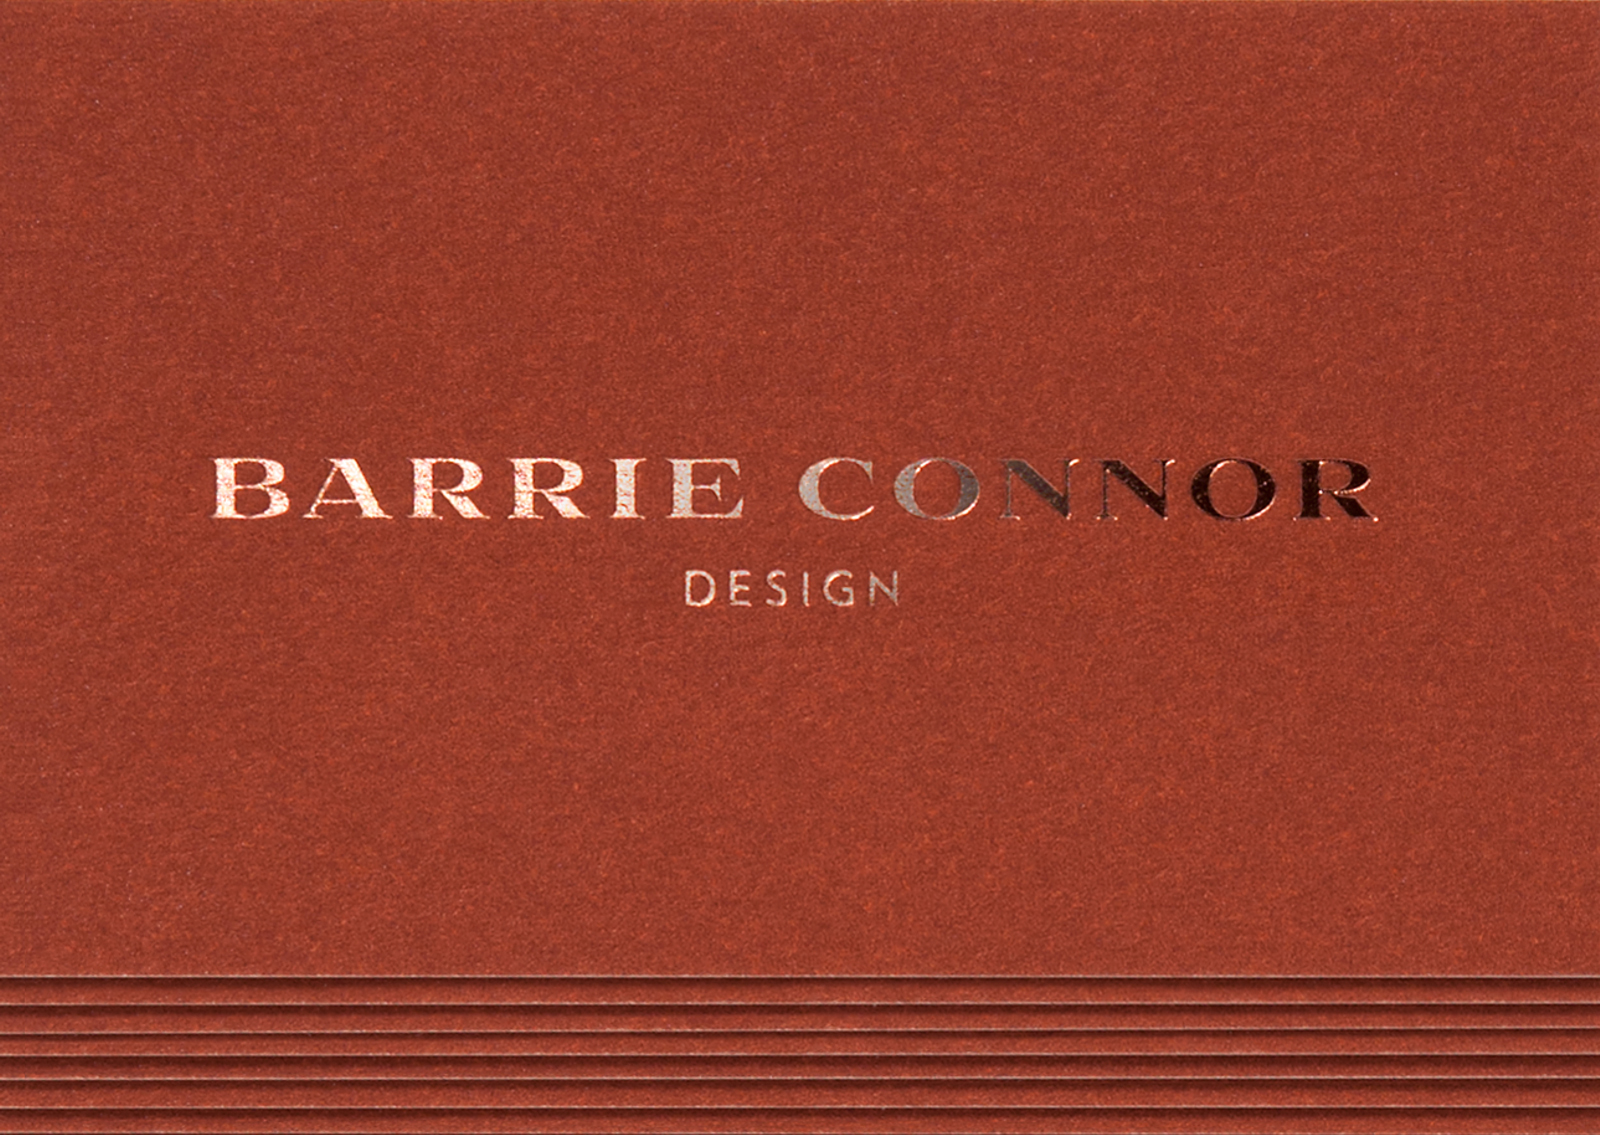 A rich tan with copper foil typography is one of 3 bespoke colours of Barrie Connor business cards